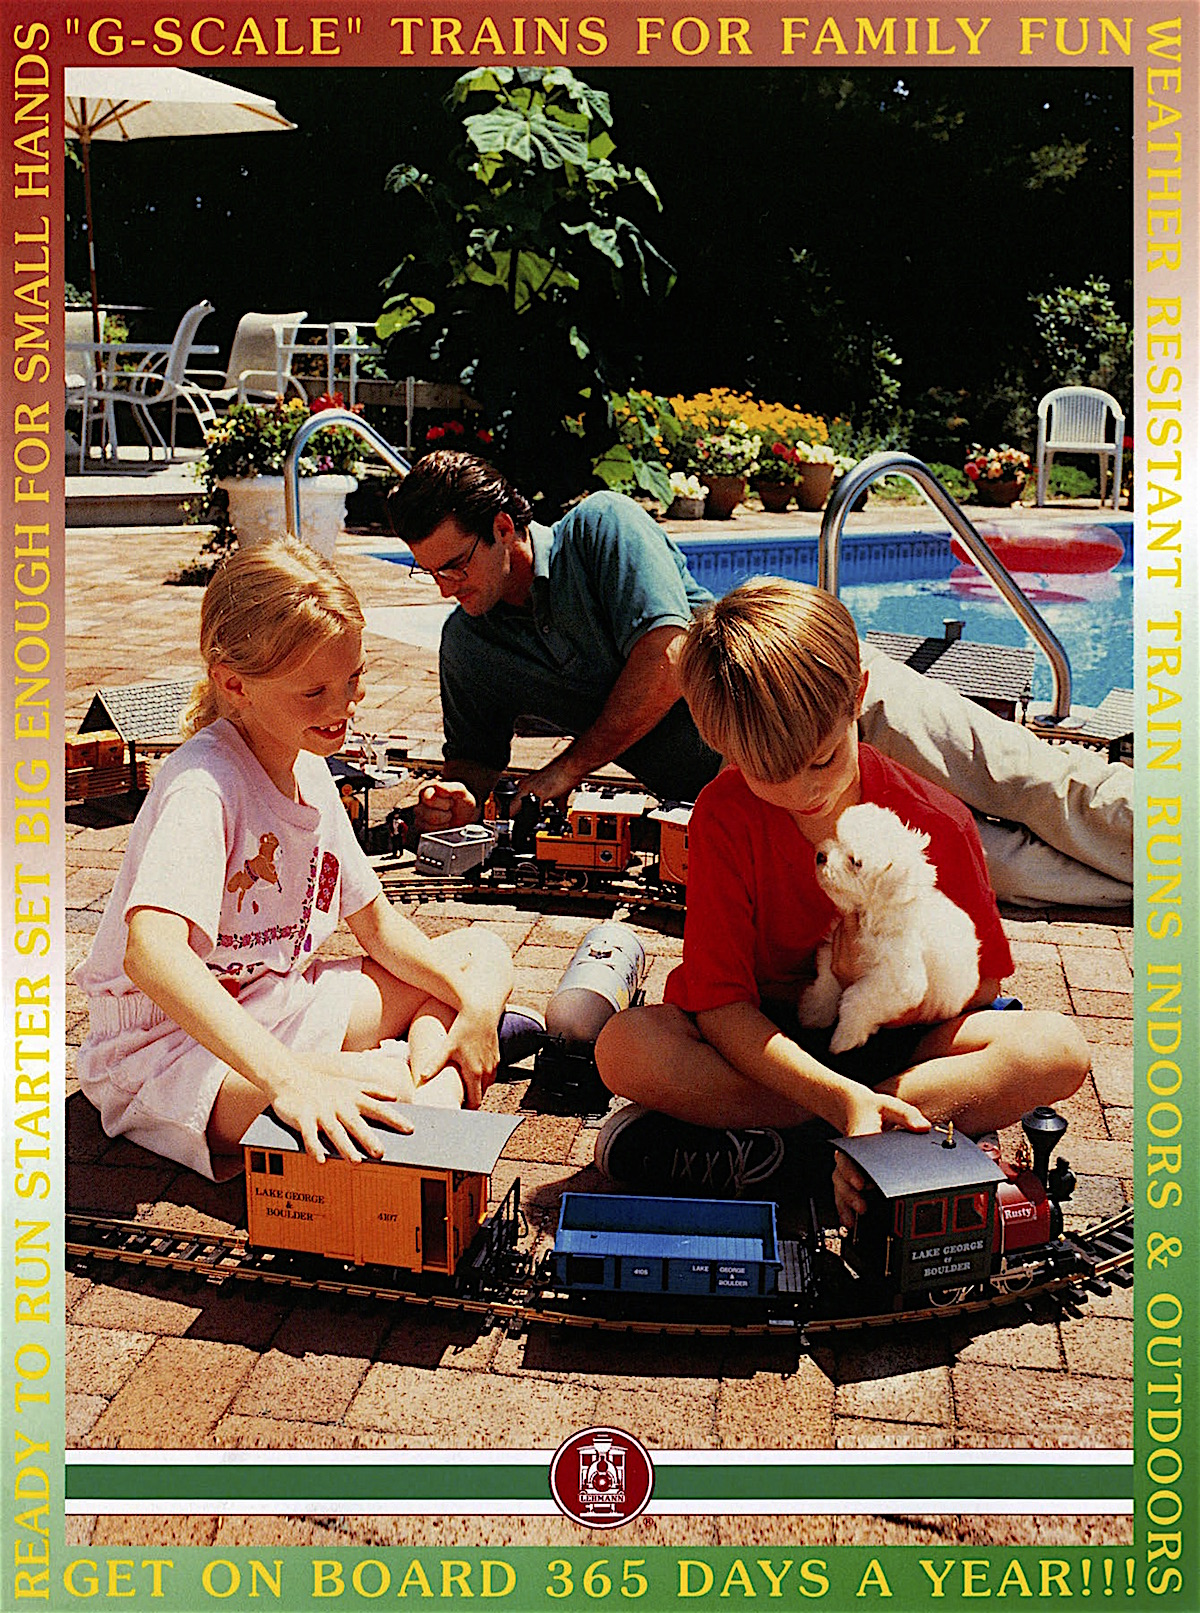 Lehmann Toy Train Katalog (Catalogue) 1996 - English